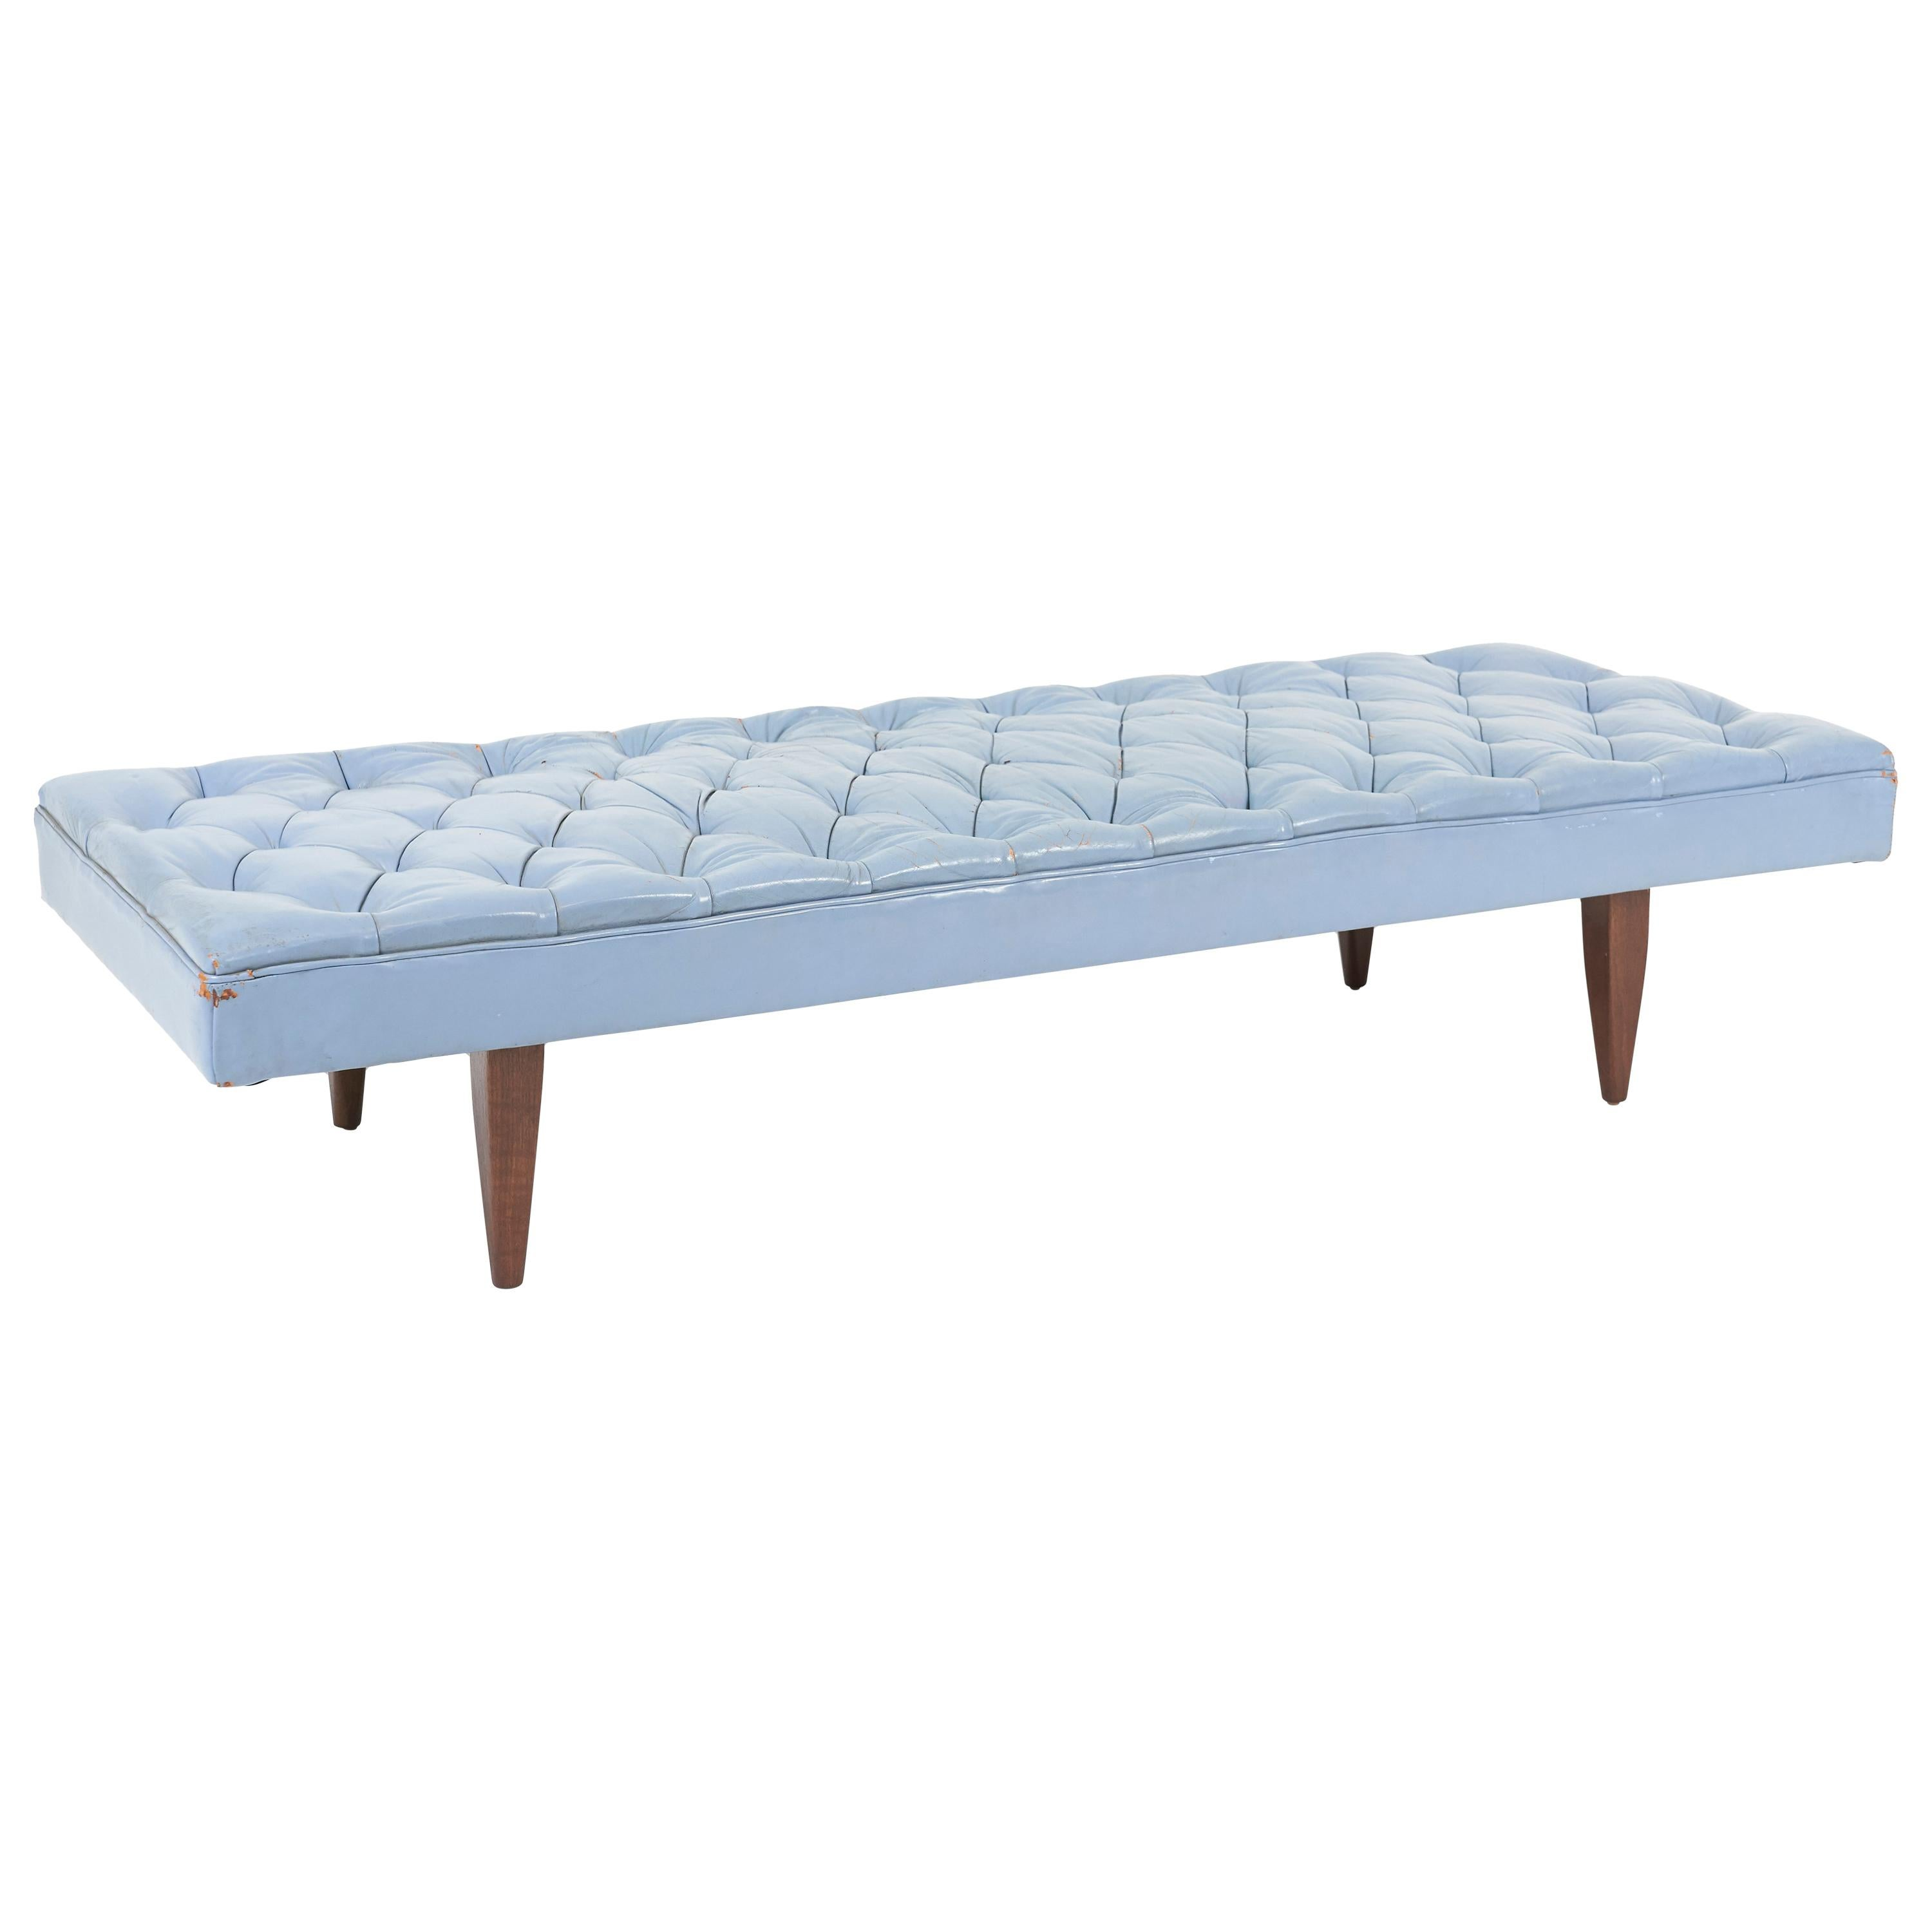 Kipp Stewart Chesterfield Tufted Leather Daybed, Calvin Furniture 1960s